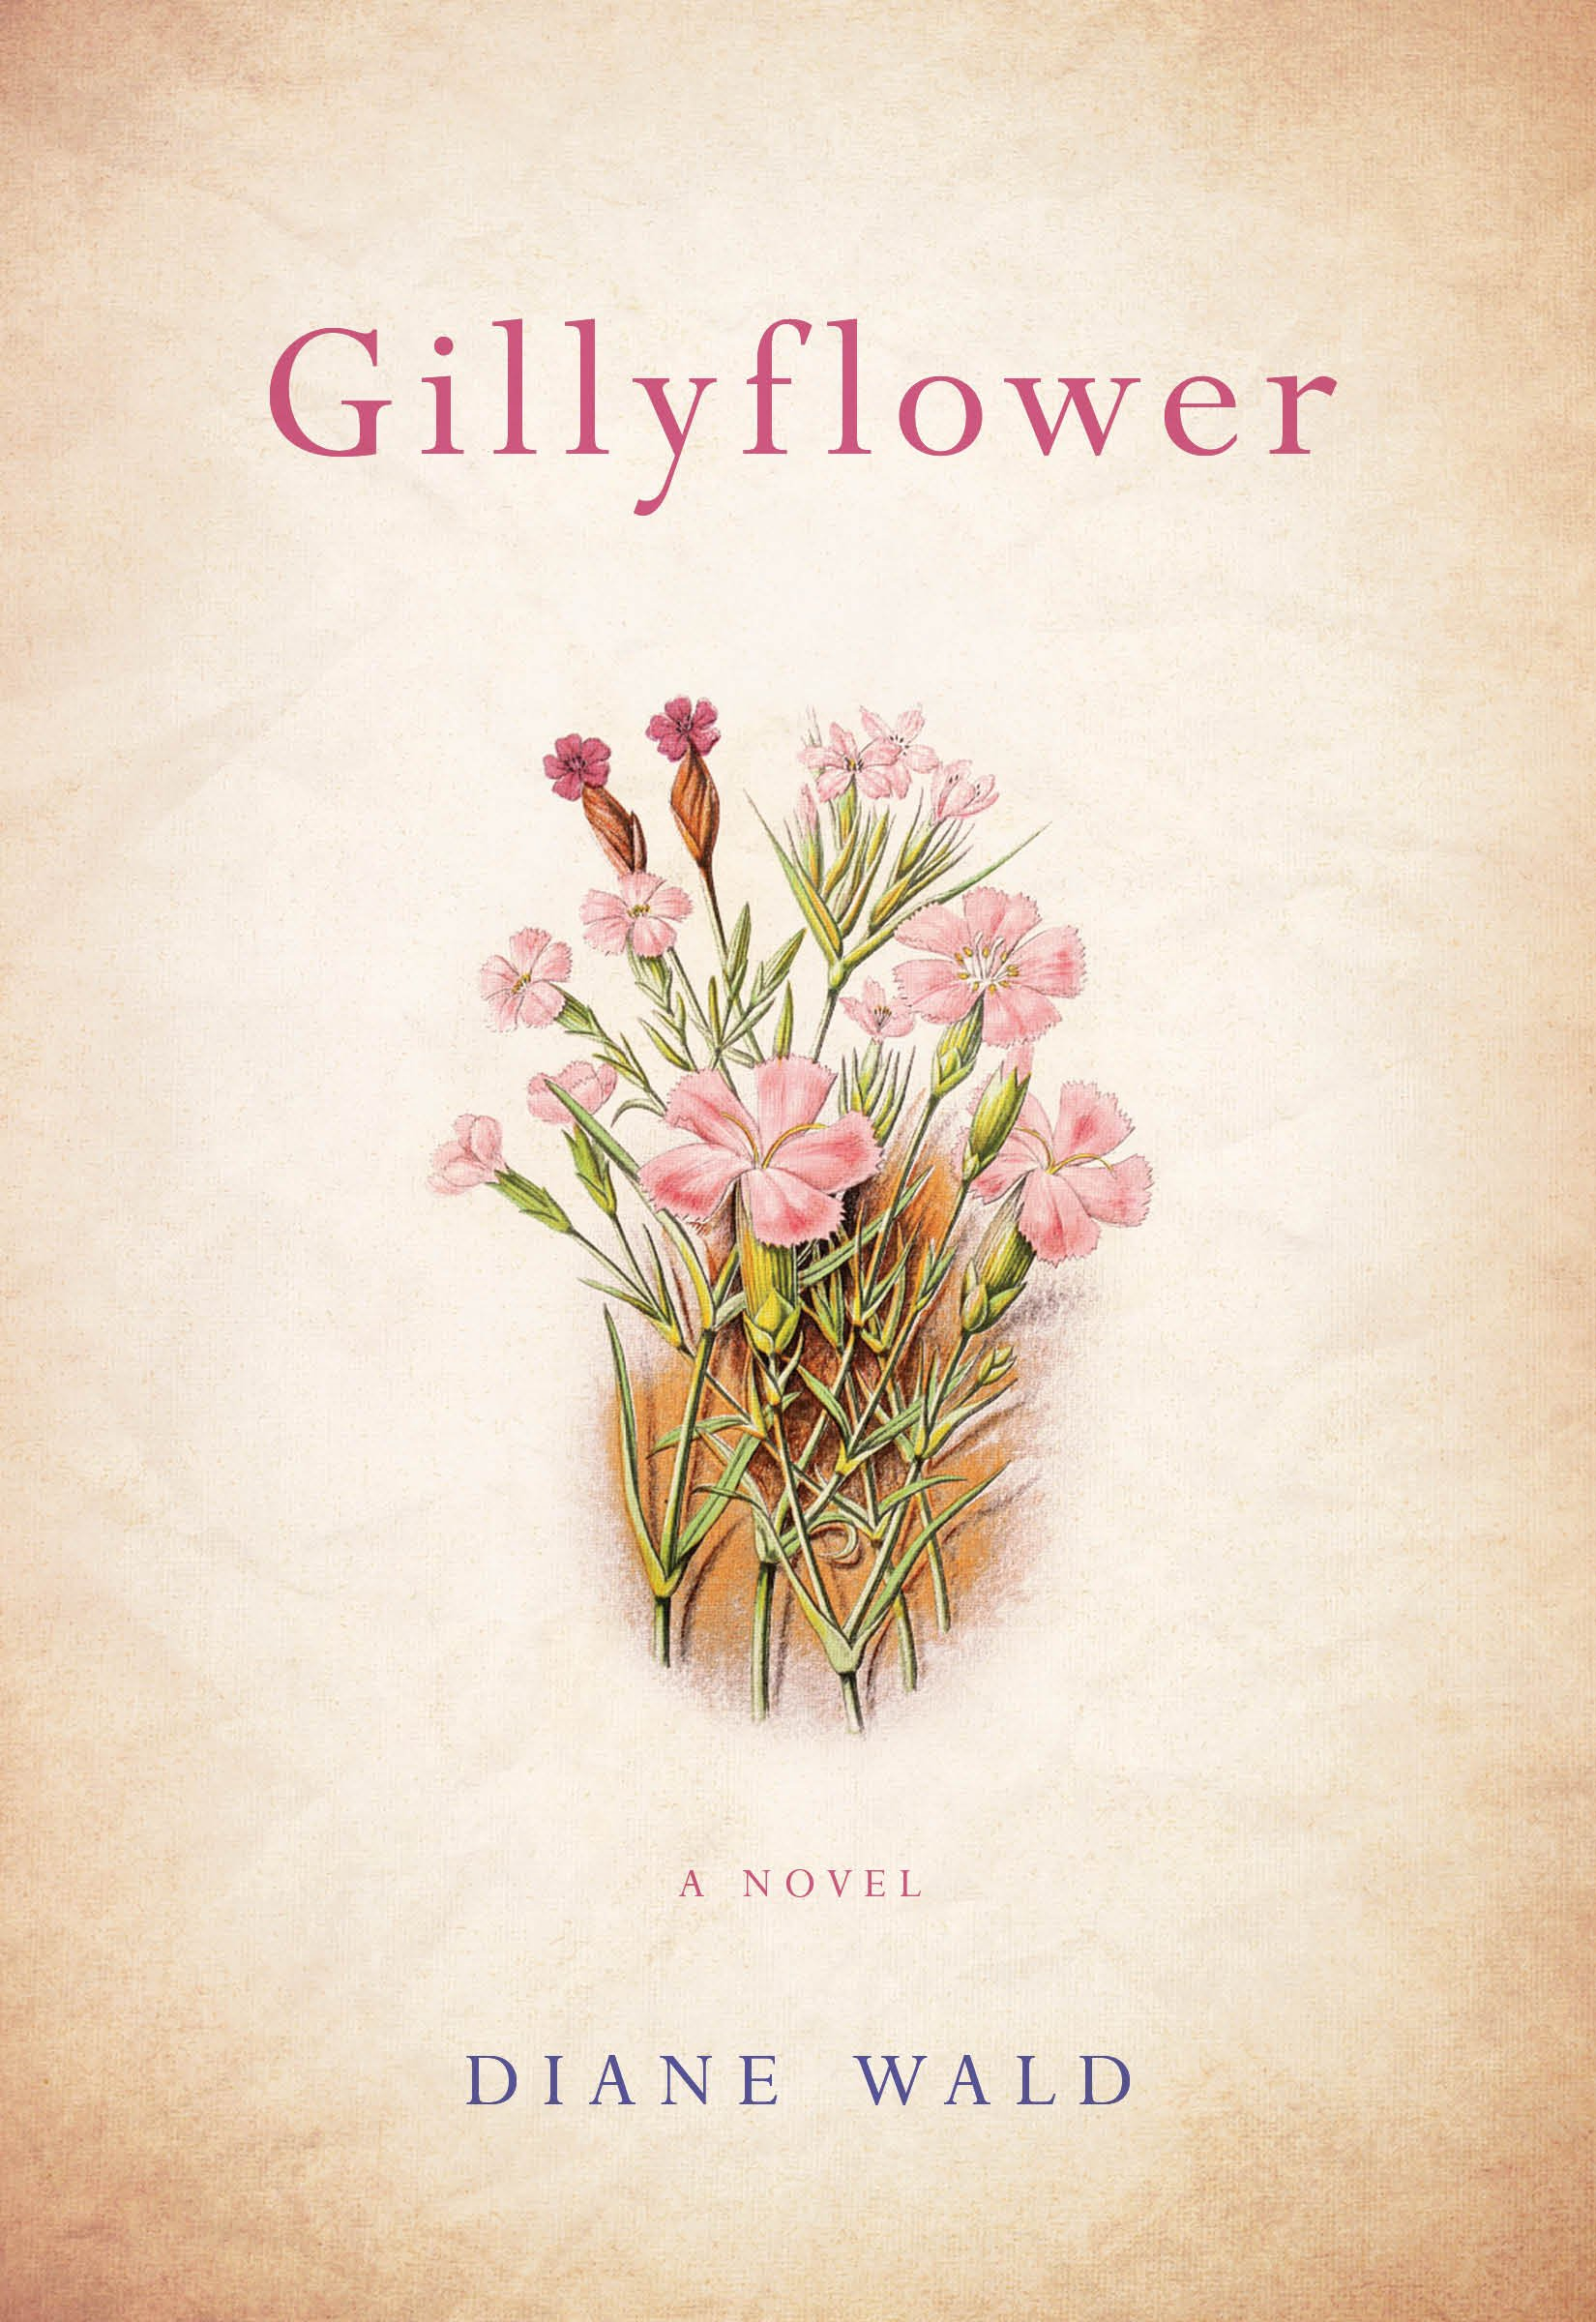 Gillyflower: A Novel